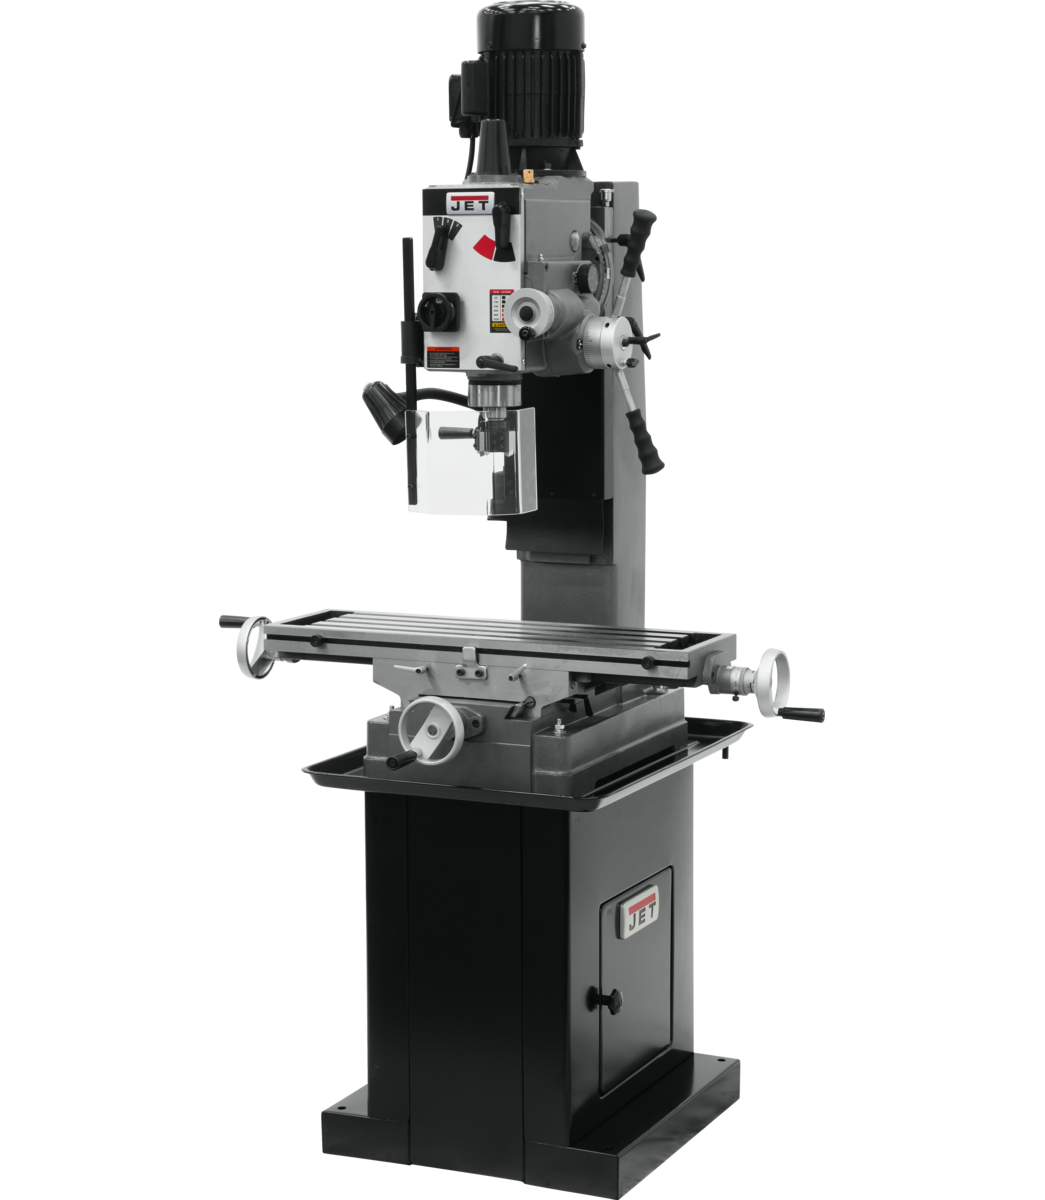 JMD-45GHPF Geared Head Square Column Mill/Drill with Power Downfeed with DP500 2-Axis DRO